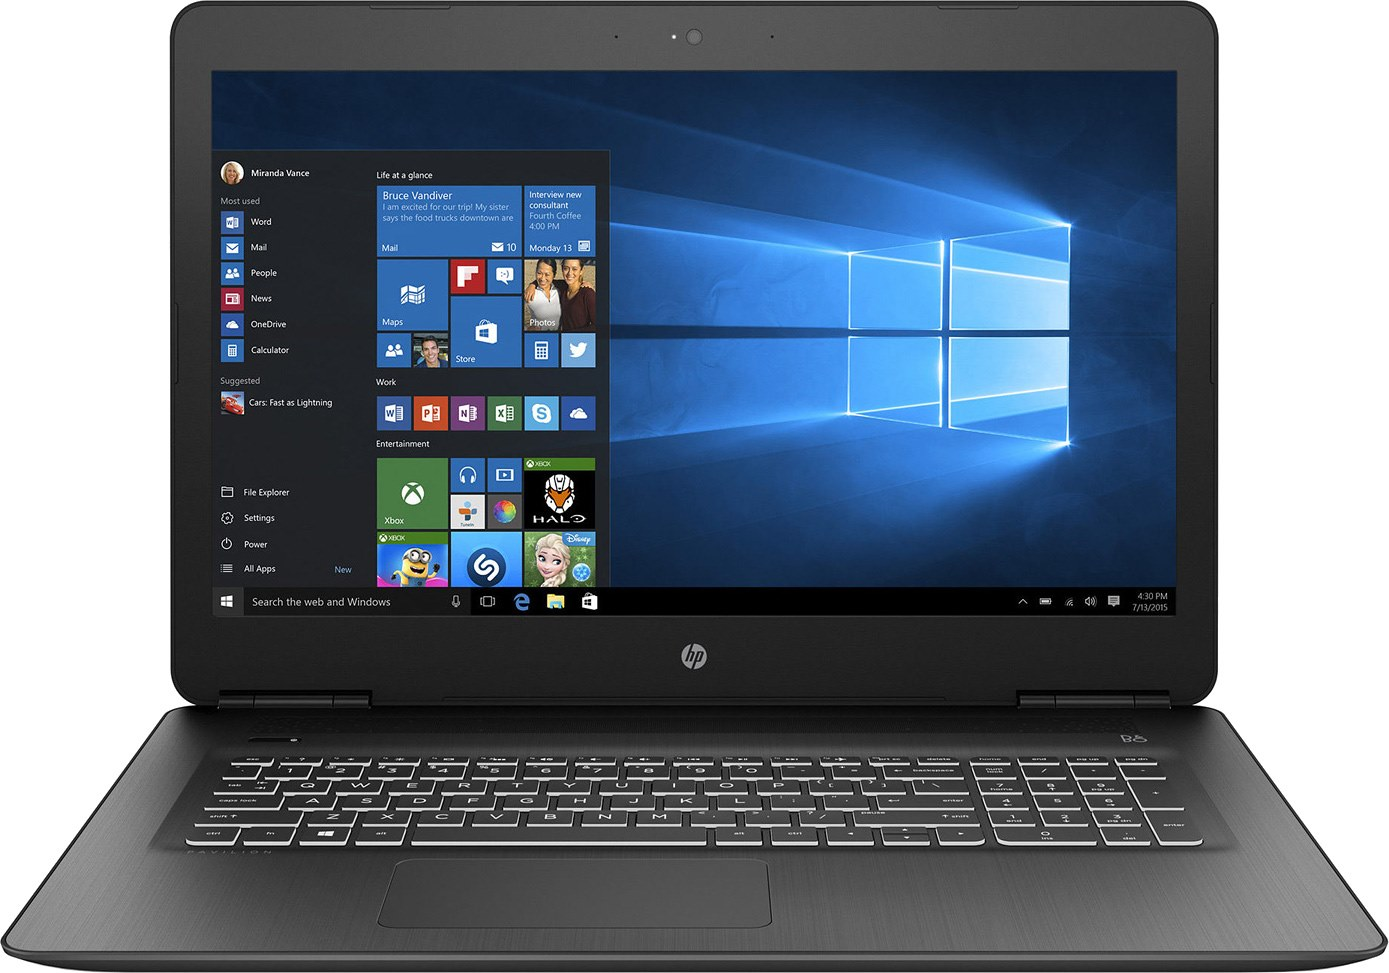 2c1dcbd43c4e81 HP Pavilion 17 (17-ab300)  Specs and Benchmarks  - LaptopMedia.com